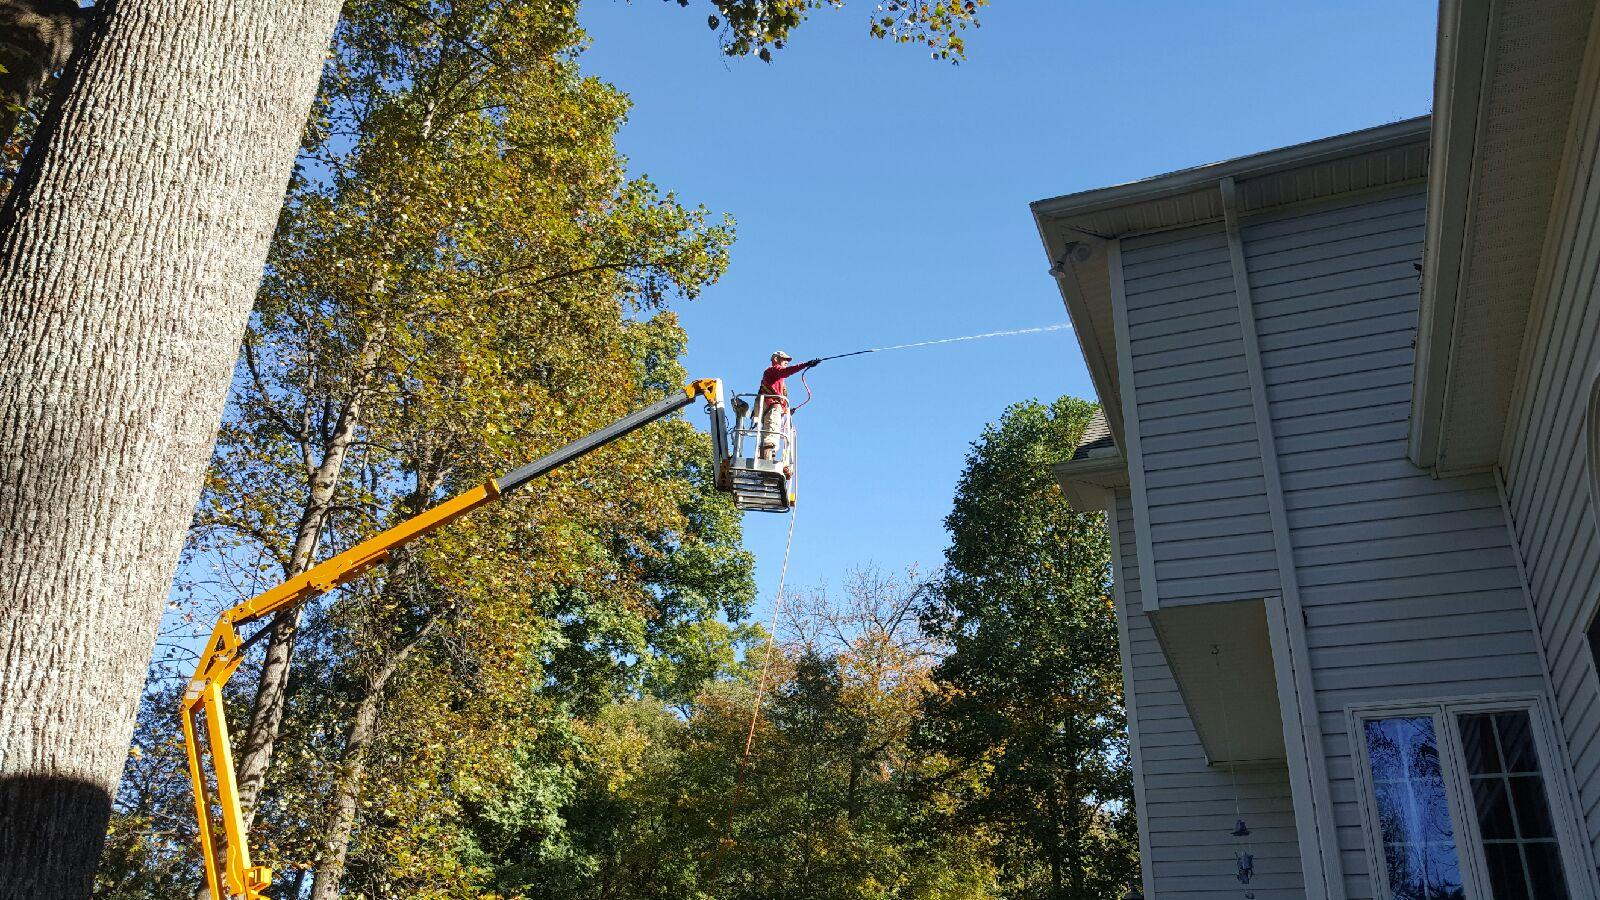 Boom Lift | Pressure Washing Service in Greencastle PA